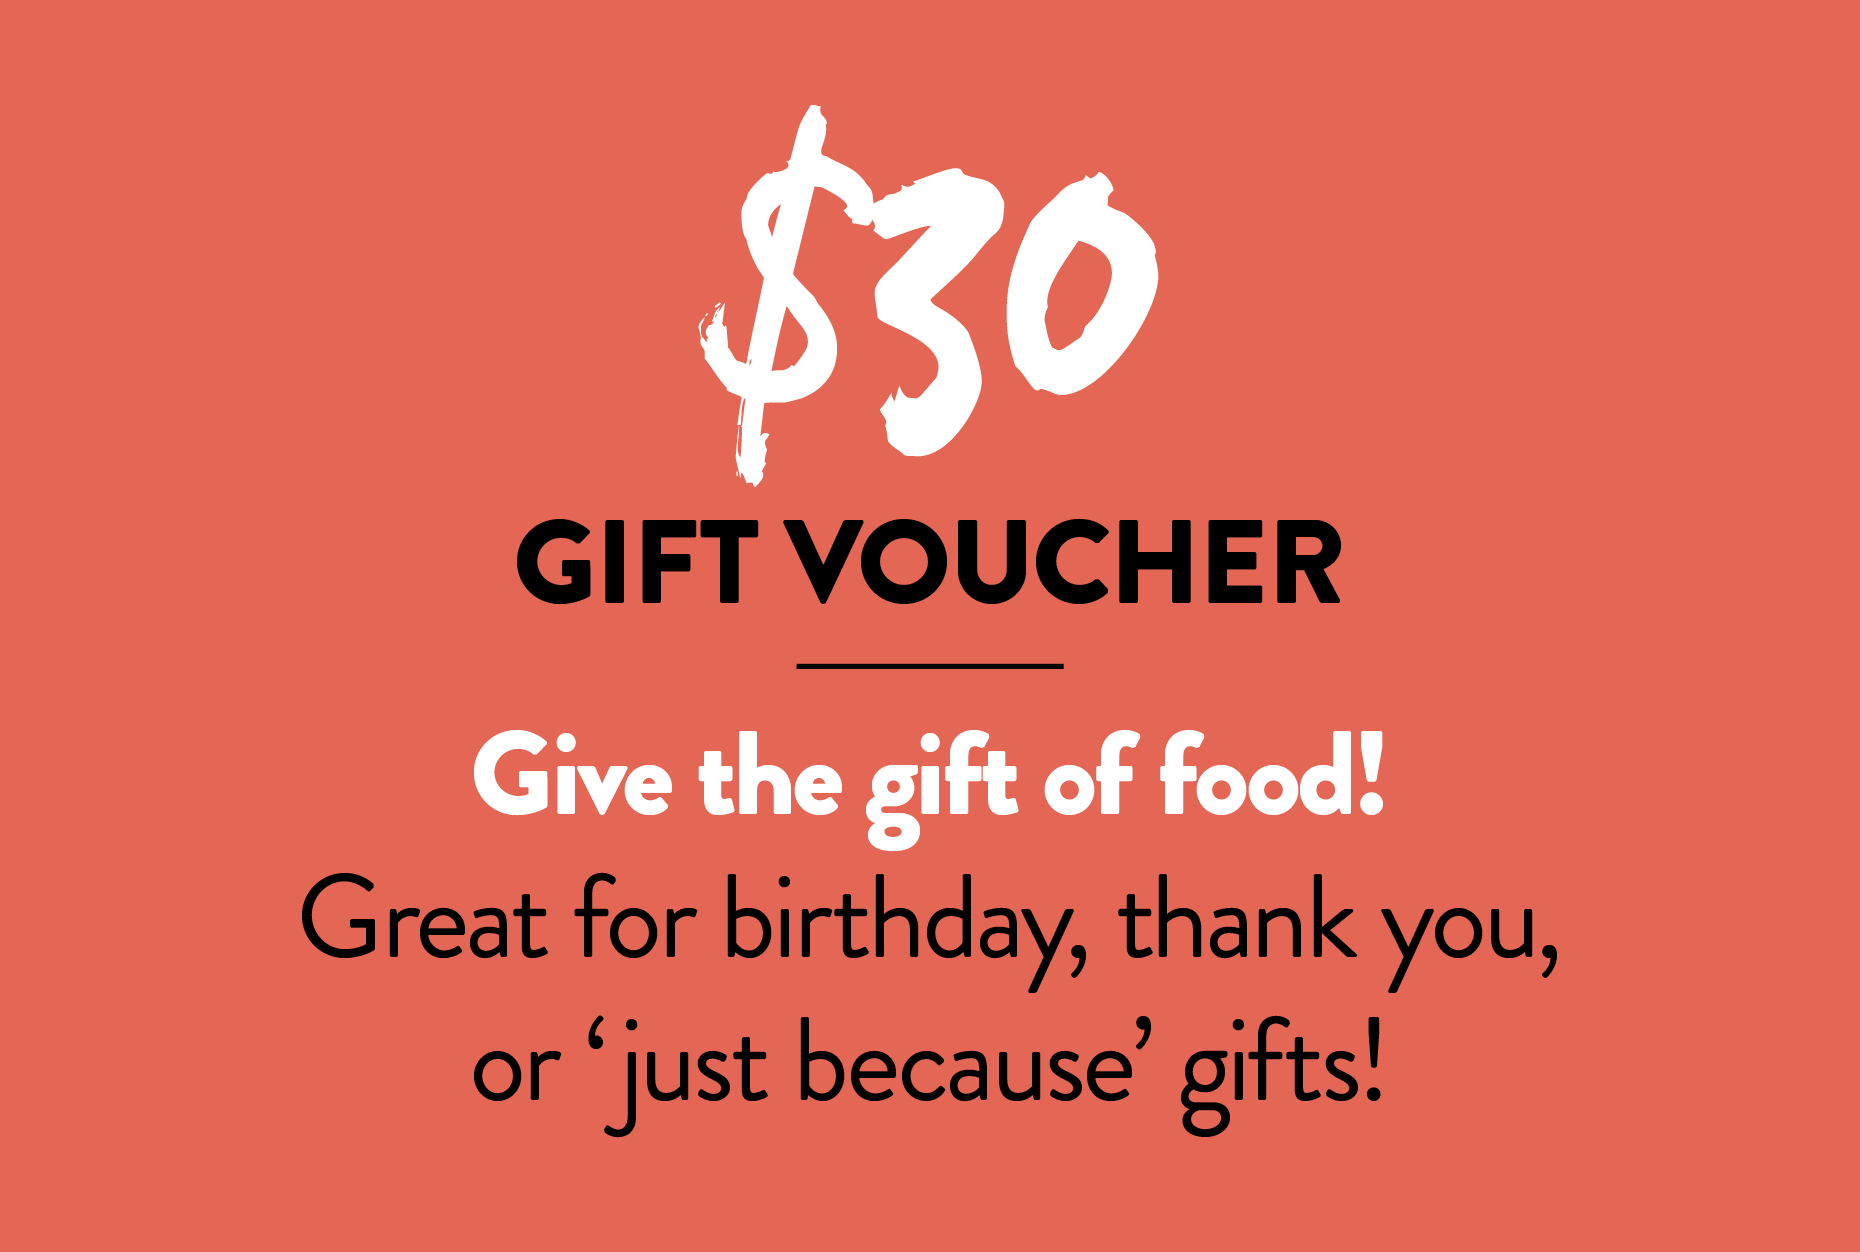 $30 Gift Voucher — The General Food Store